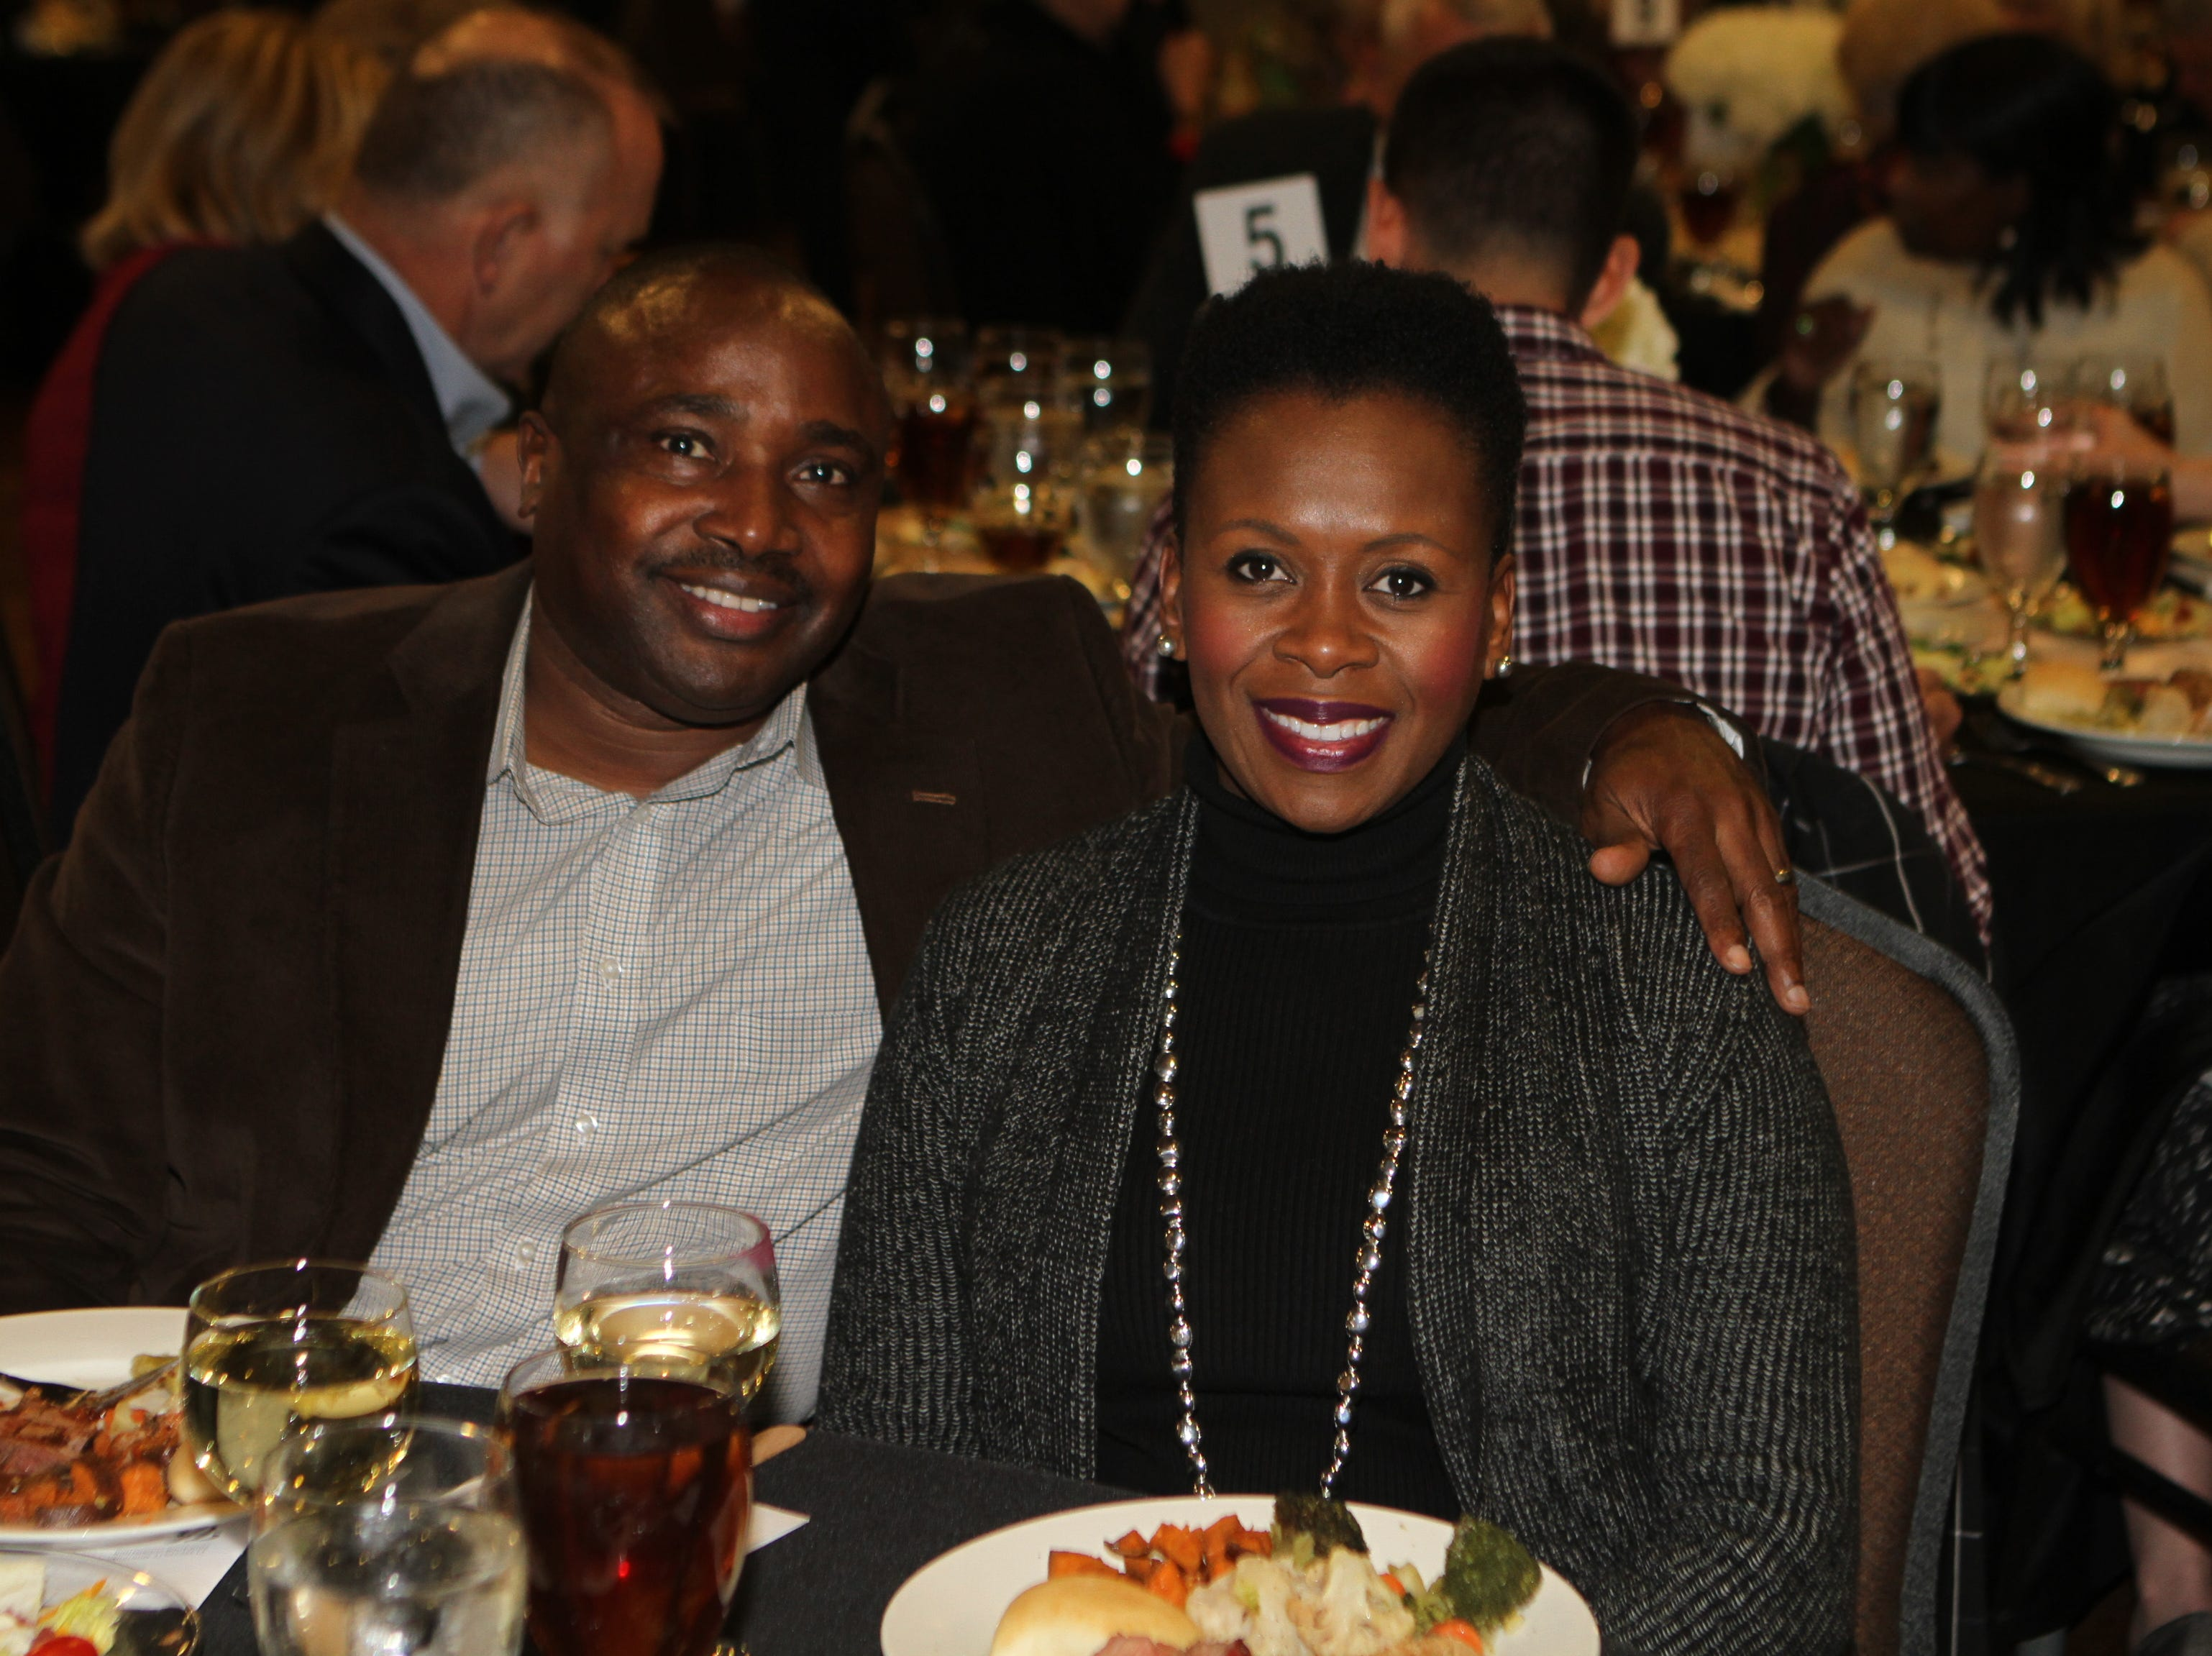 Oneal and Kimberly Wiggins at CMC Education Foundation's annual fundraiser Vision to Reality on Friday, November 2, 2018